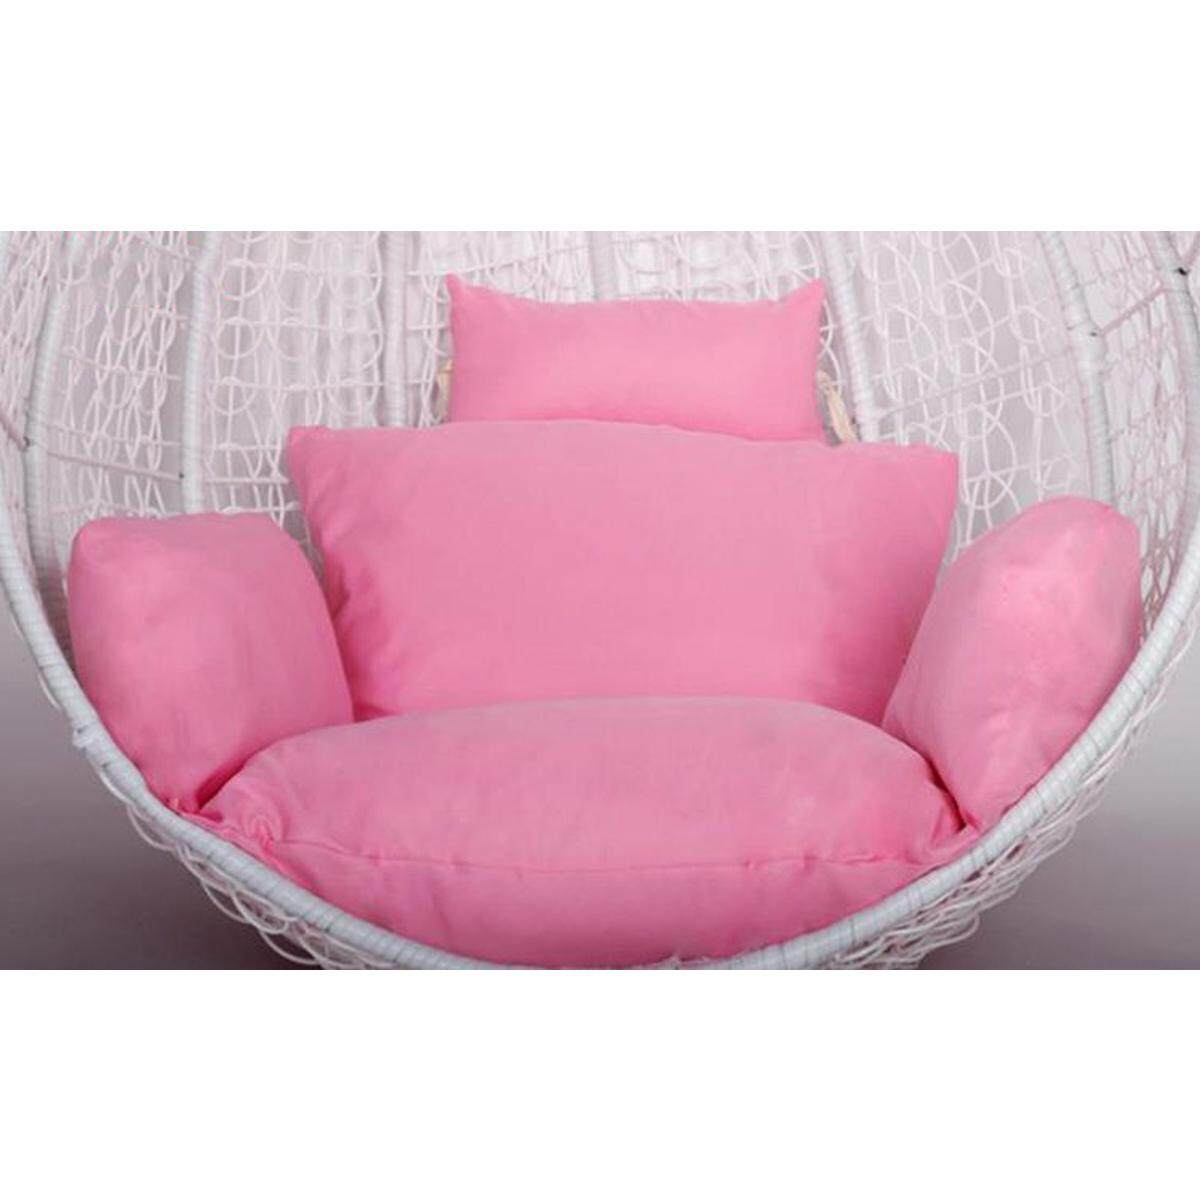 Indoor Furniture Hanging Chair Wicker Seat Detachable Cushions Pad &pillow By Elec Mall.